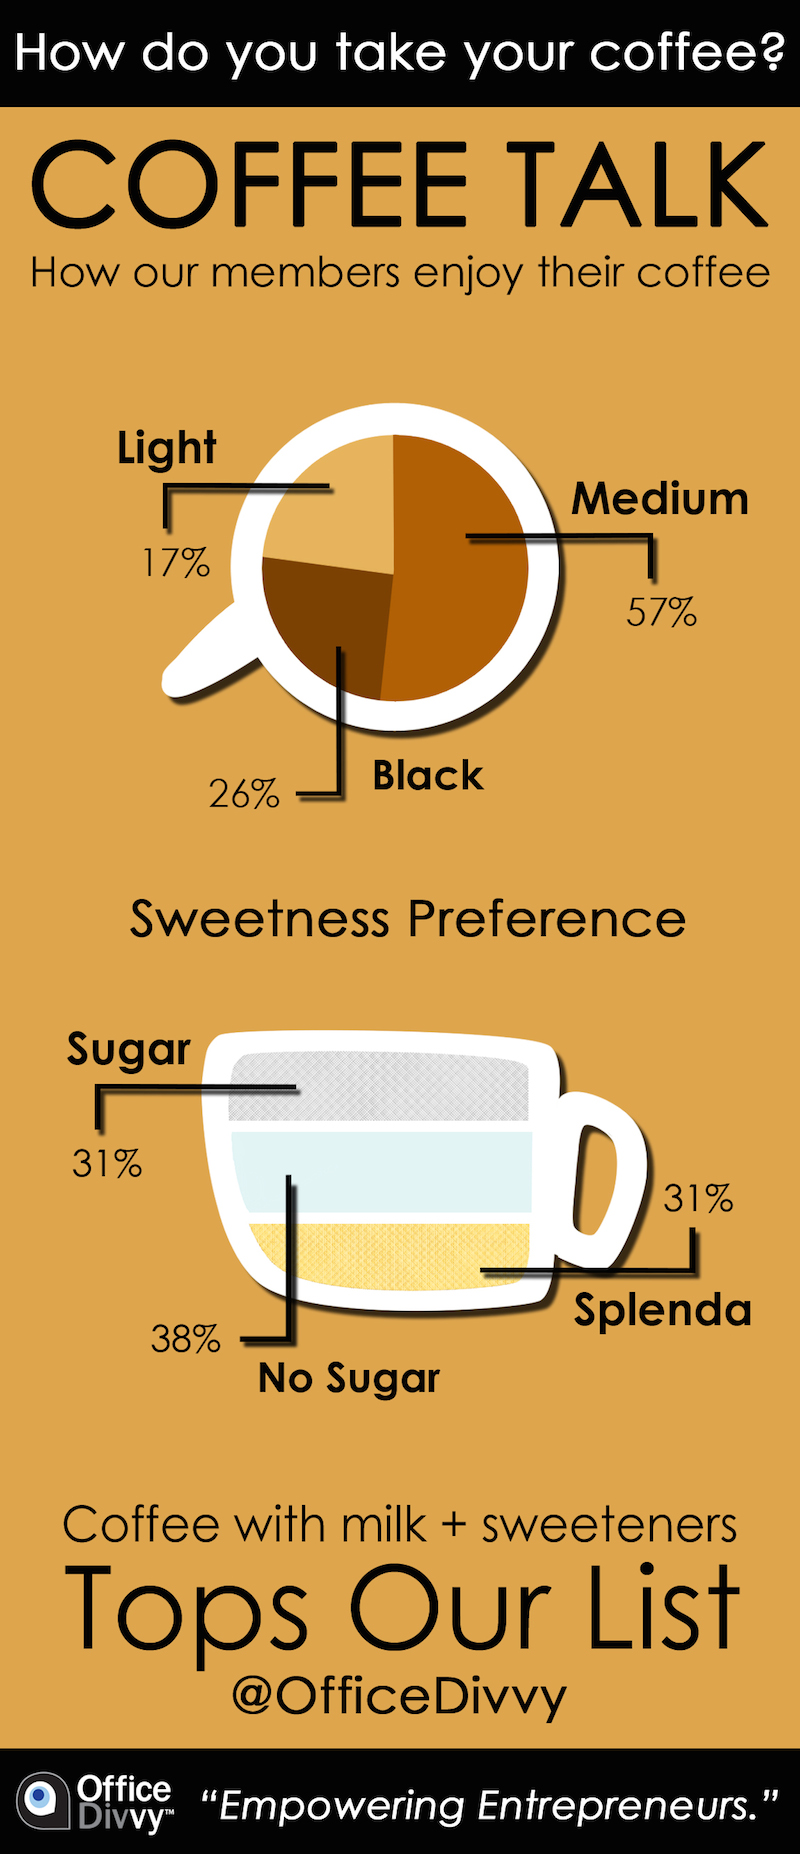 Office-Divvy-Coffee-Infographic-Final-2-AK-060315